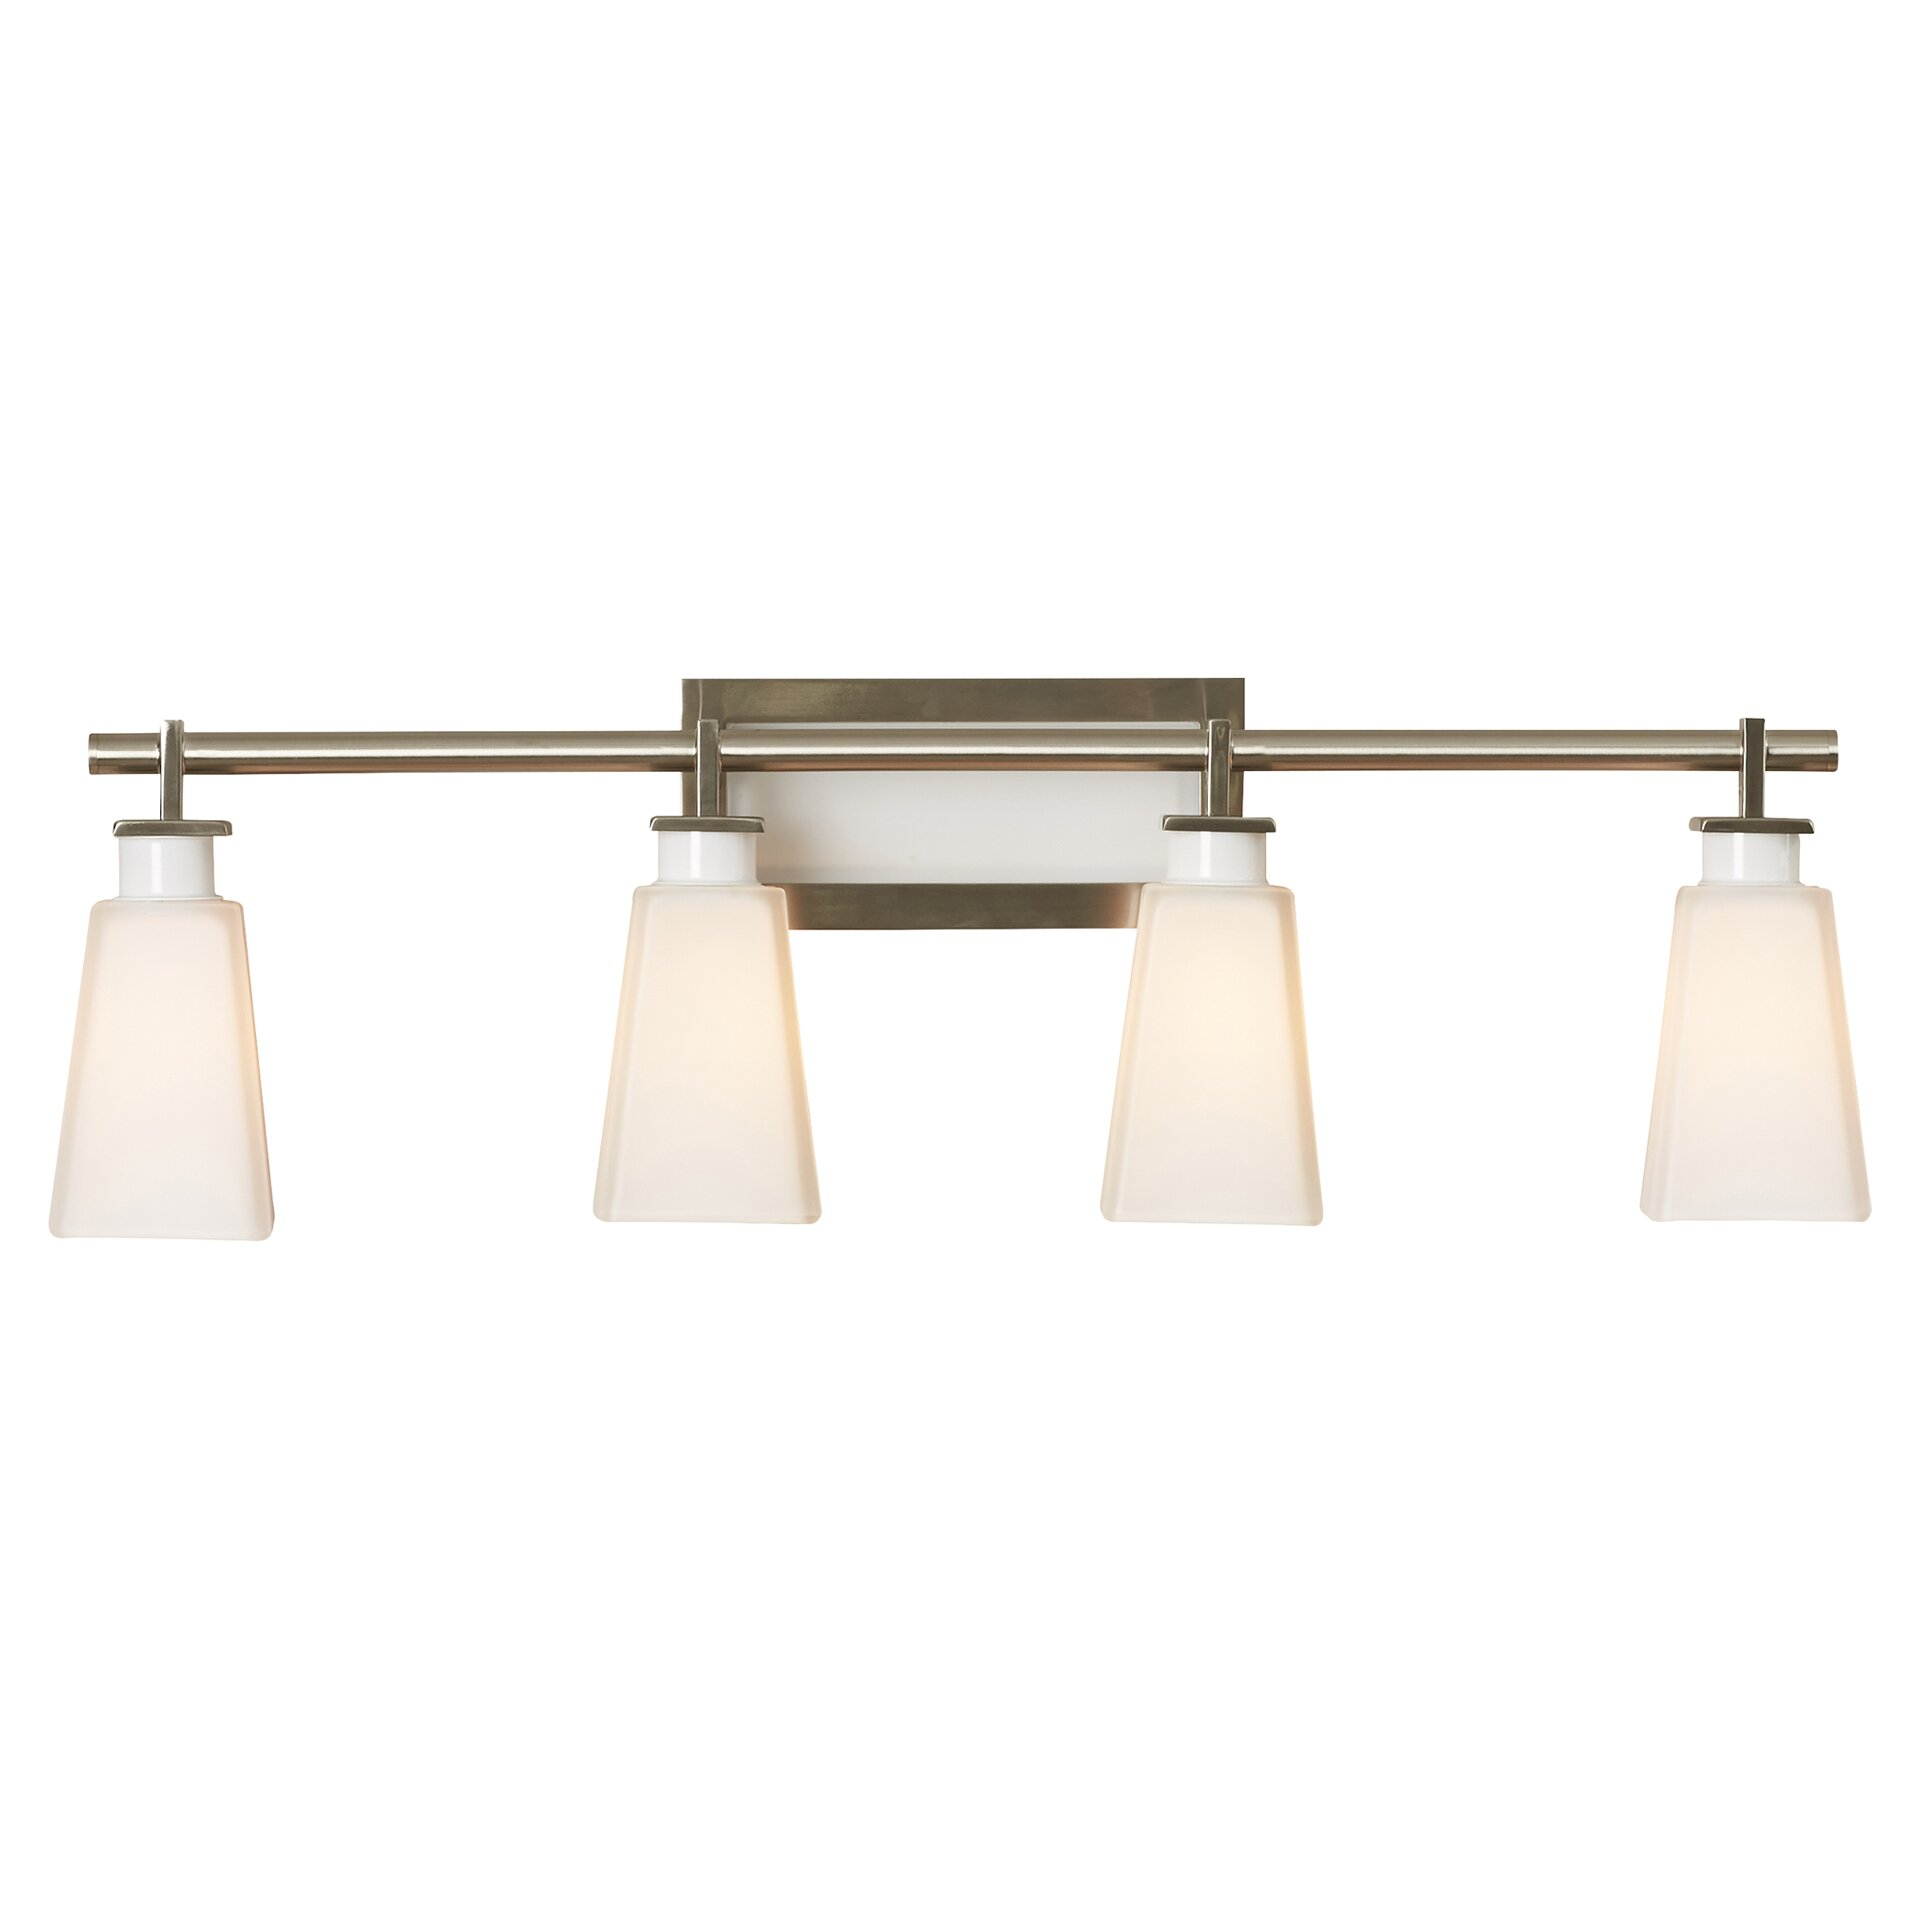 Brayden Studio Vargas 4 Light Vanity Light & Reviews Wayfair.ca